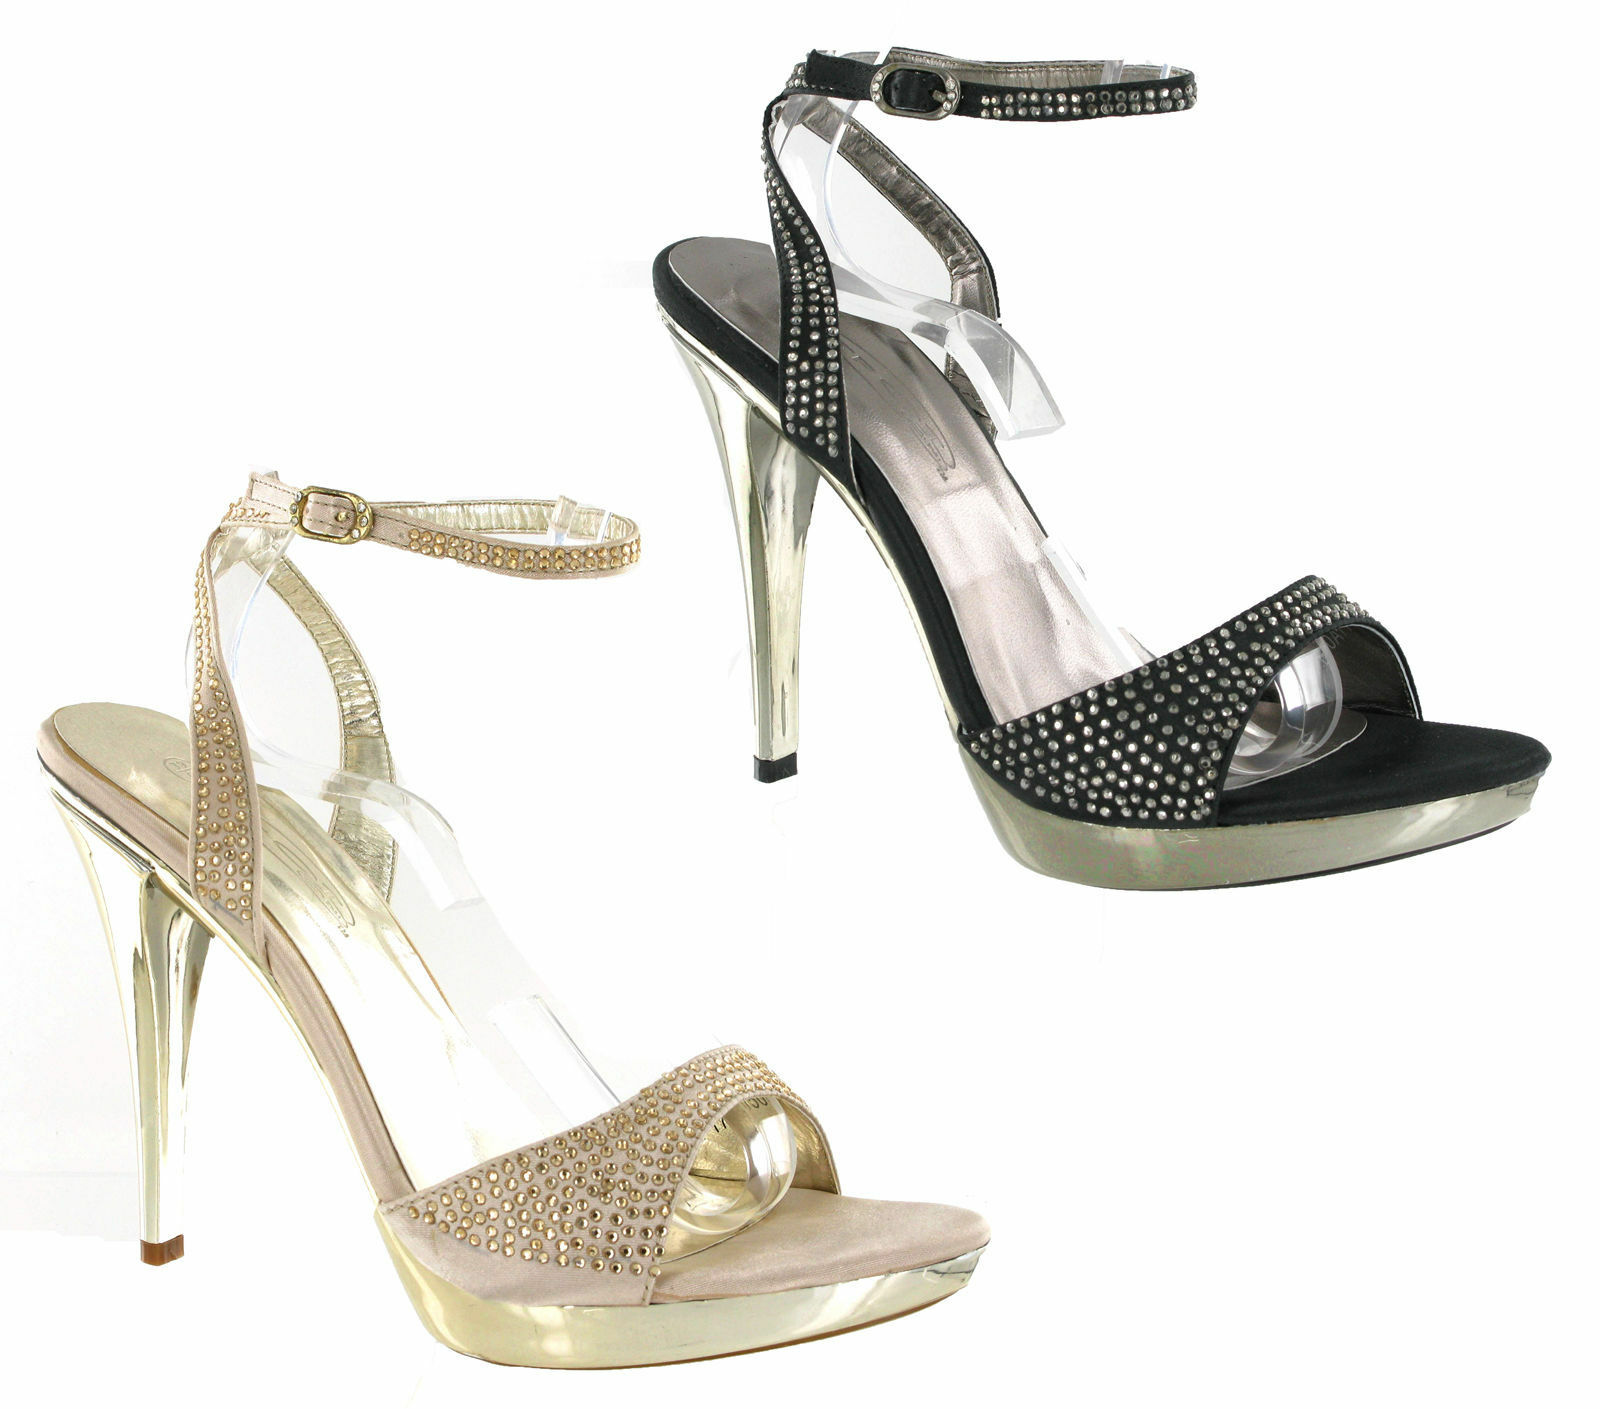 hoch Stiletto Absatz PLATTFORM PARTY STRASS Riemen Damen Schuhe uk3-8